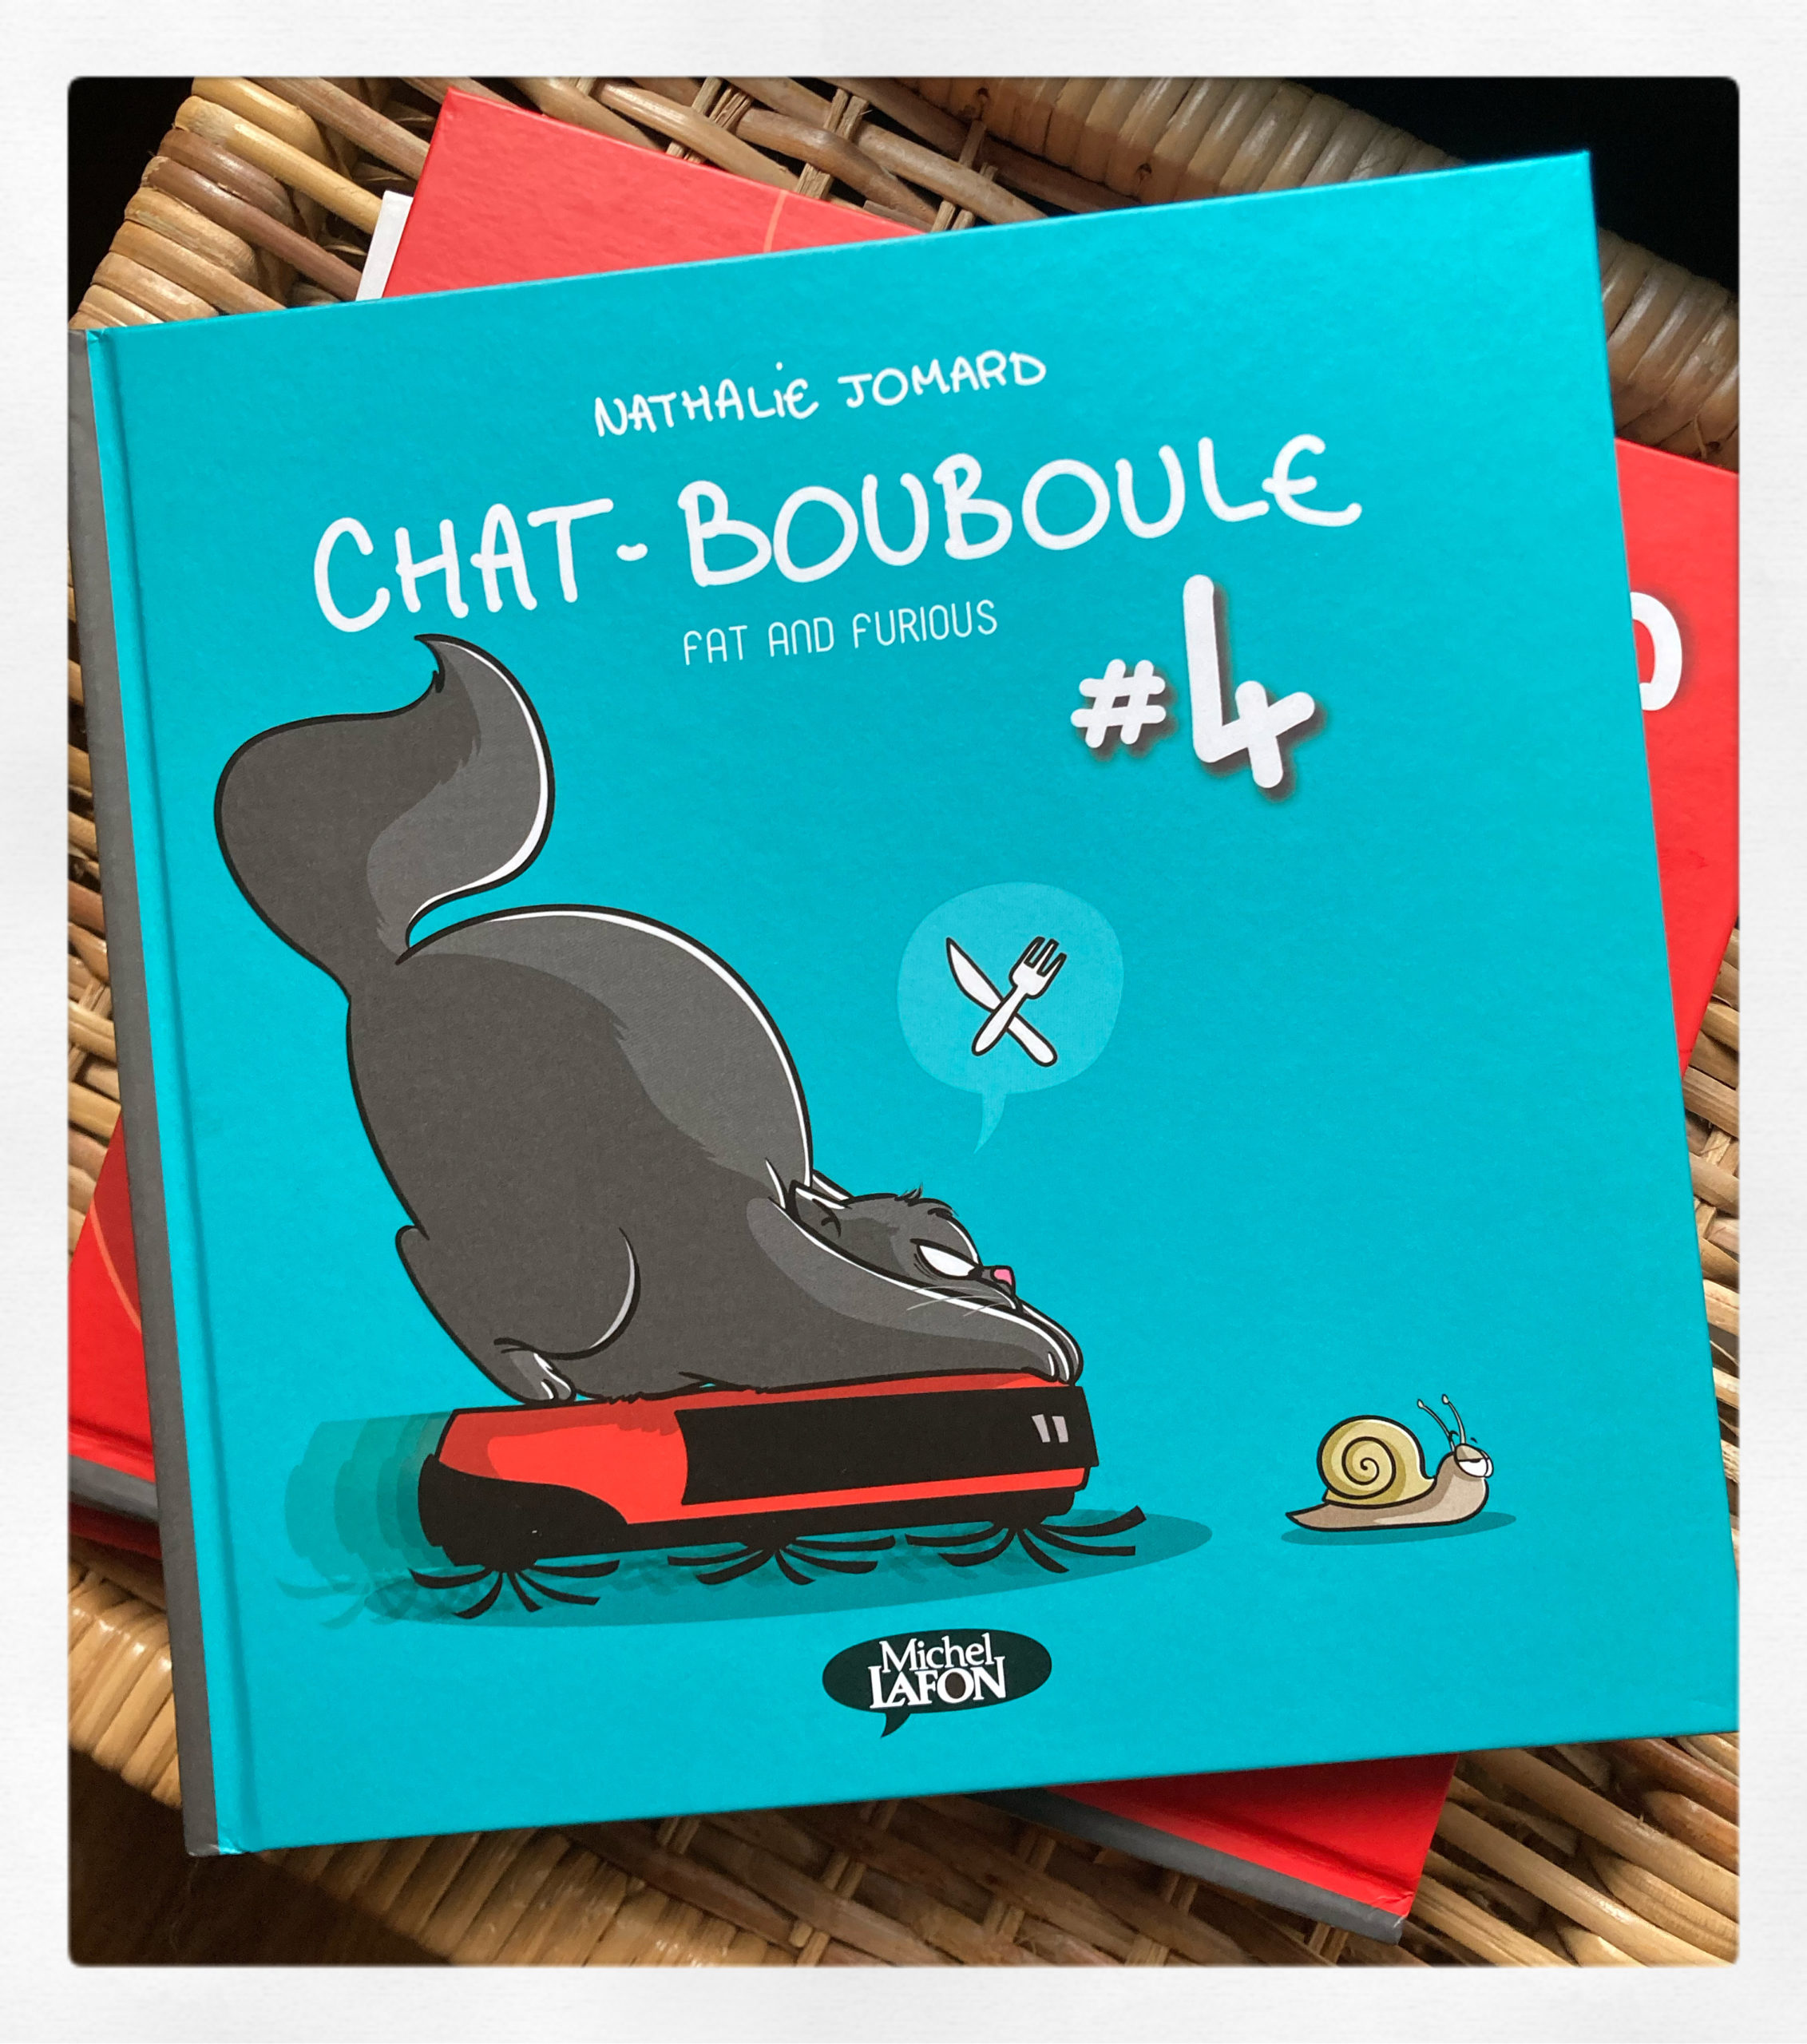 """Chat-Bouboule Fat and Furious #4"" de Nathalie Jomard..."